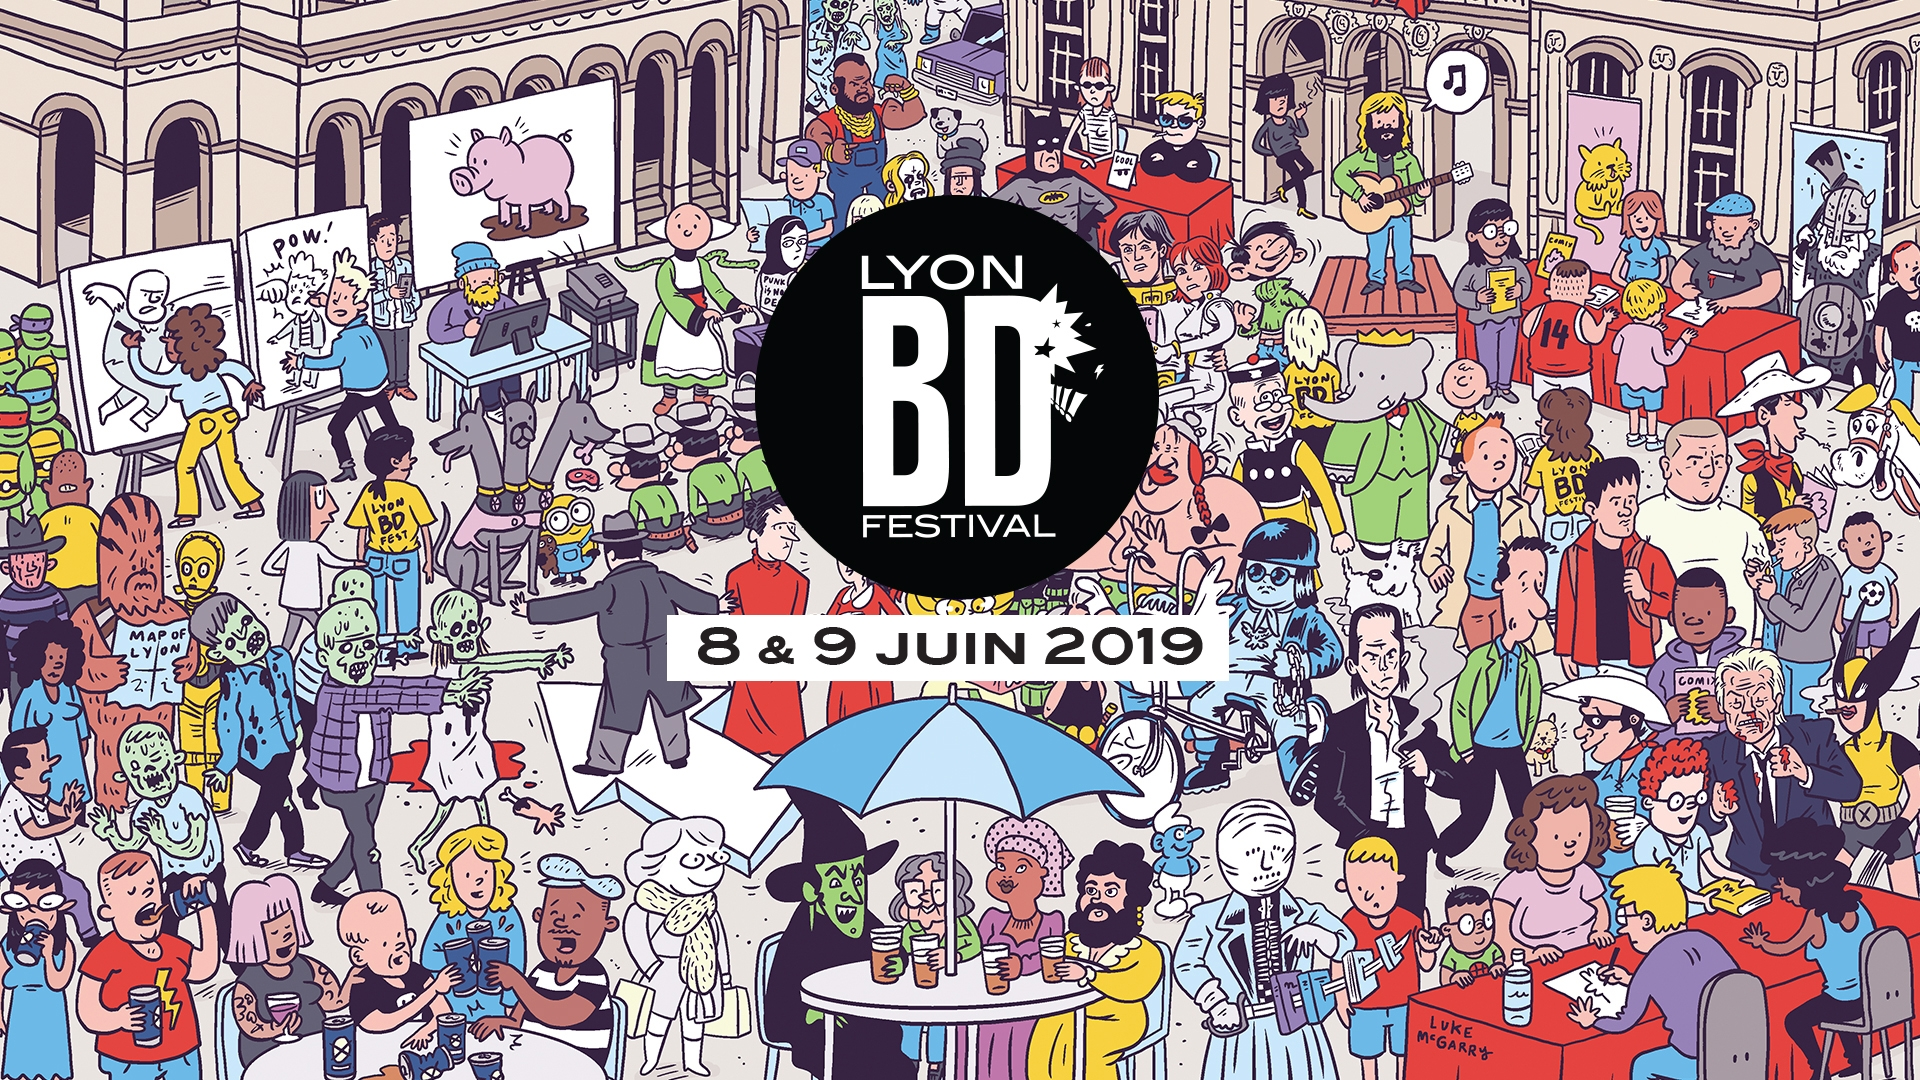 https://www.lyonbd.com/images/festivals/festivals_visuel_full-20190503162709.jpg